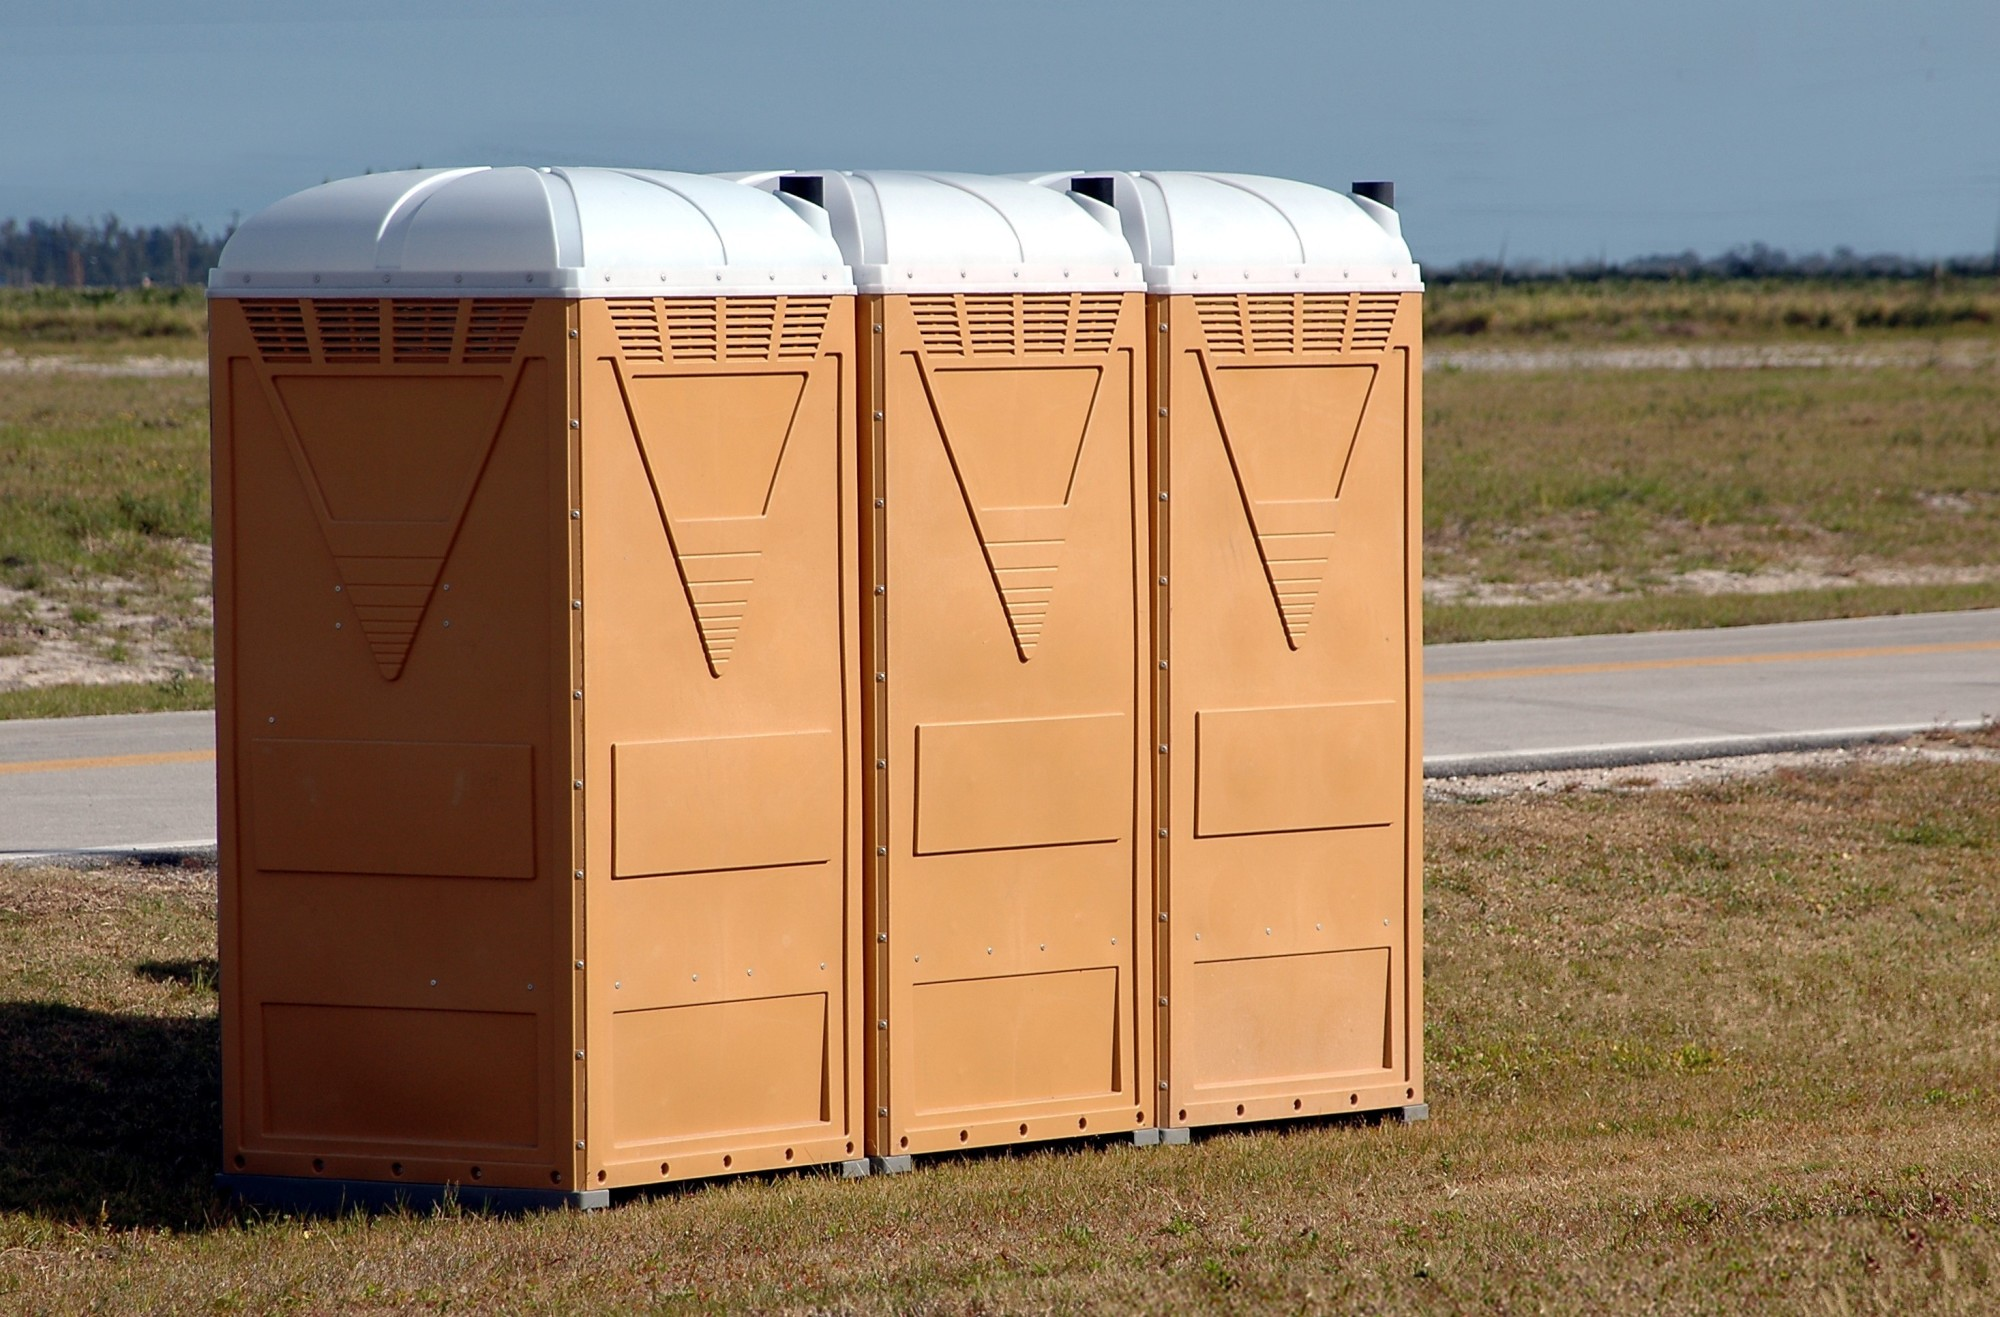 What Questions Should I Ask Prior to Renting a Porta Potty?